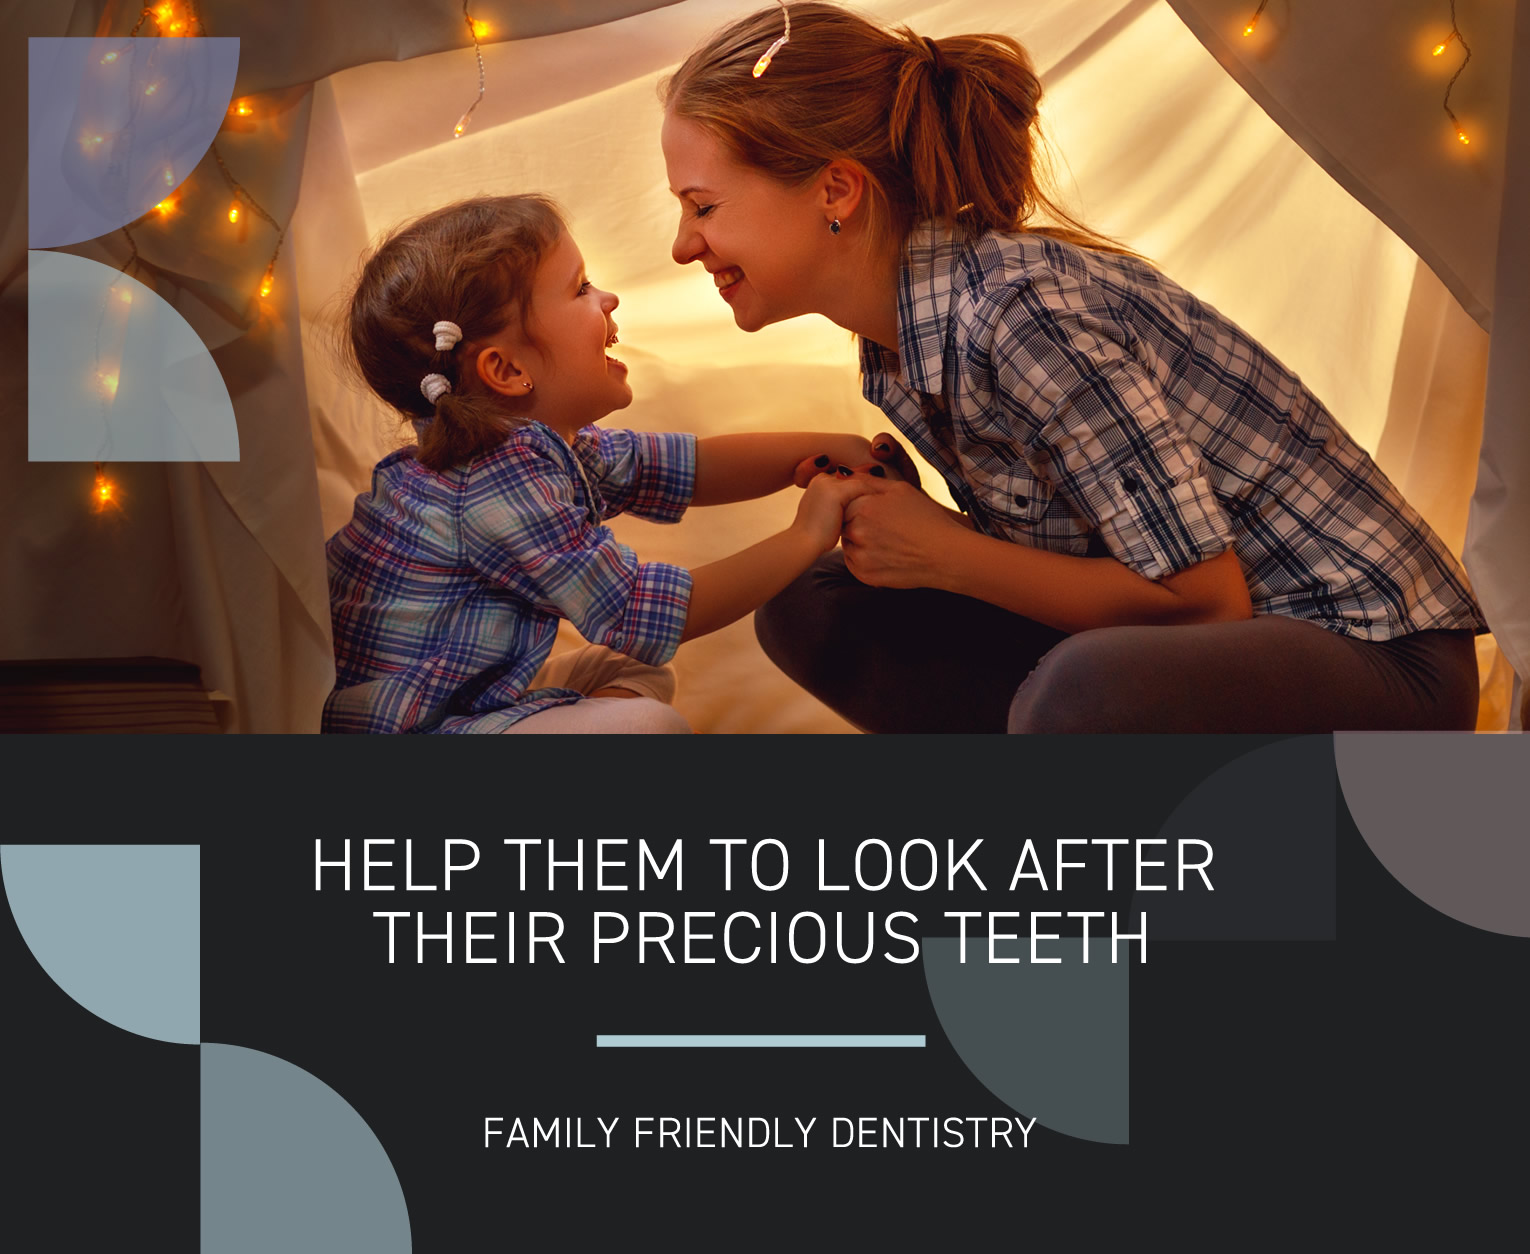 Family treatments at Gentle Dental